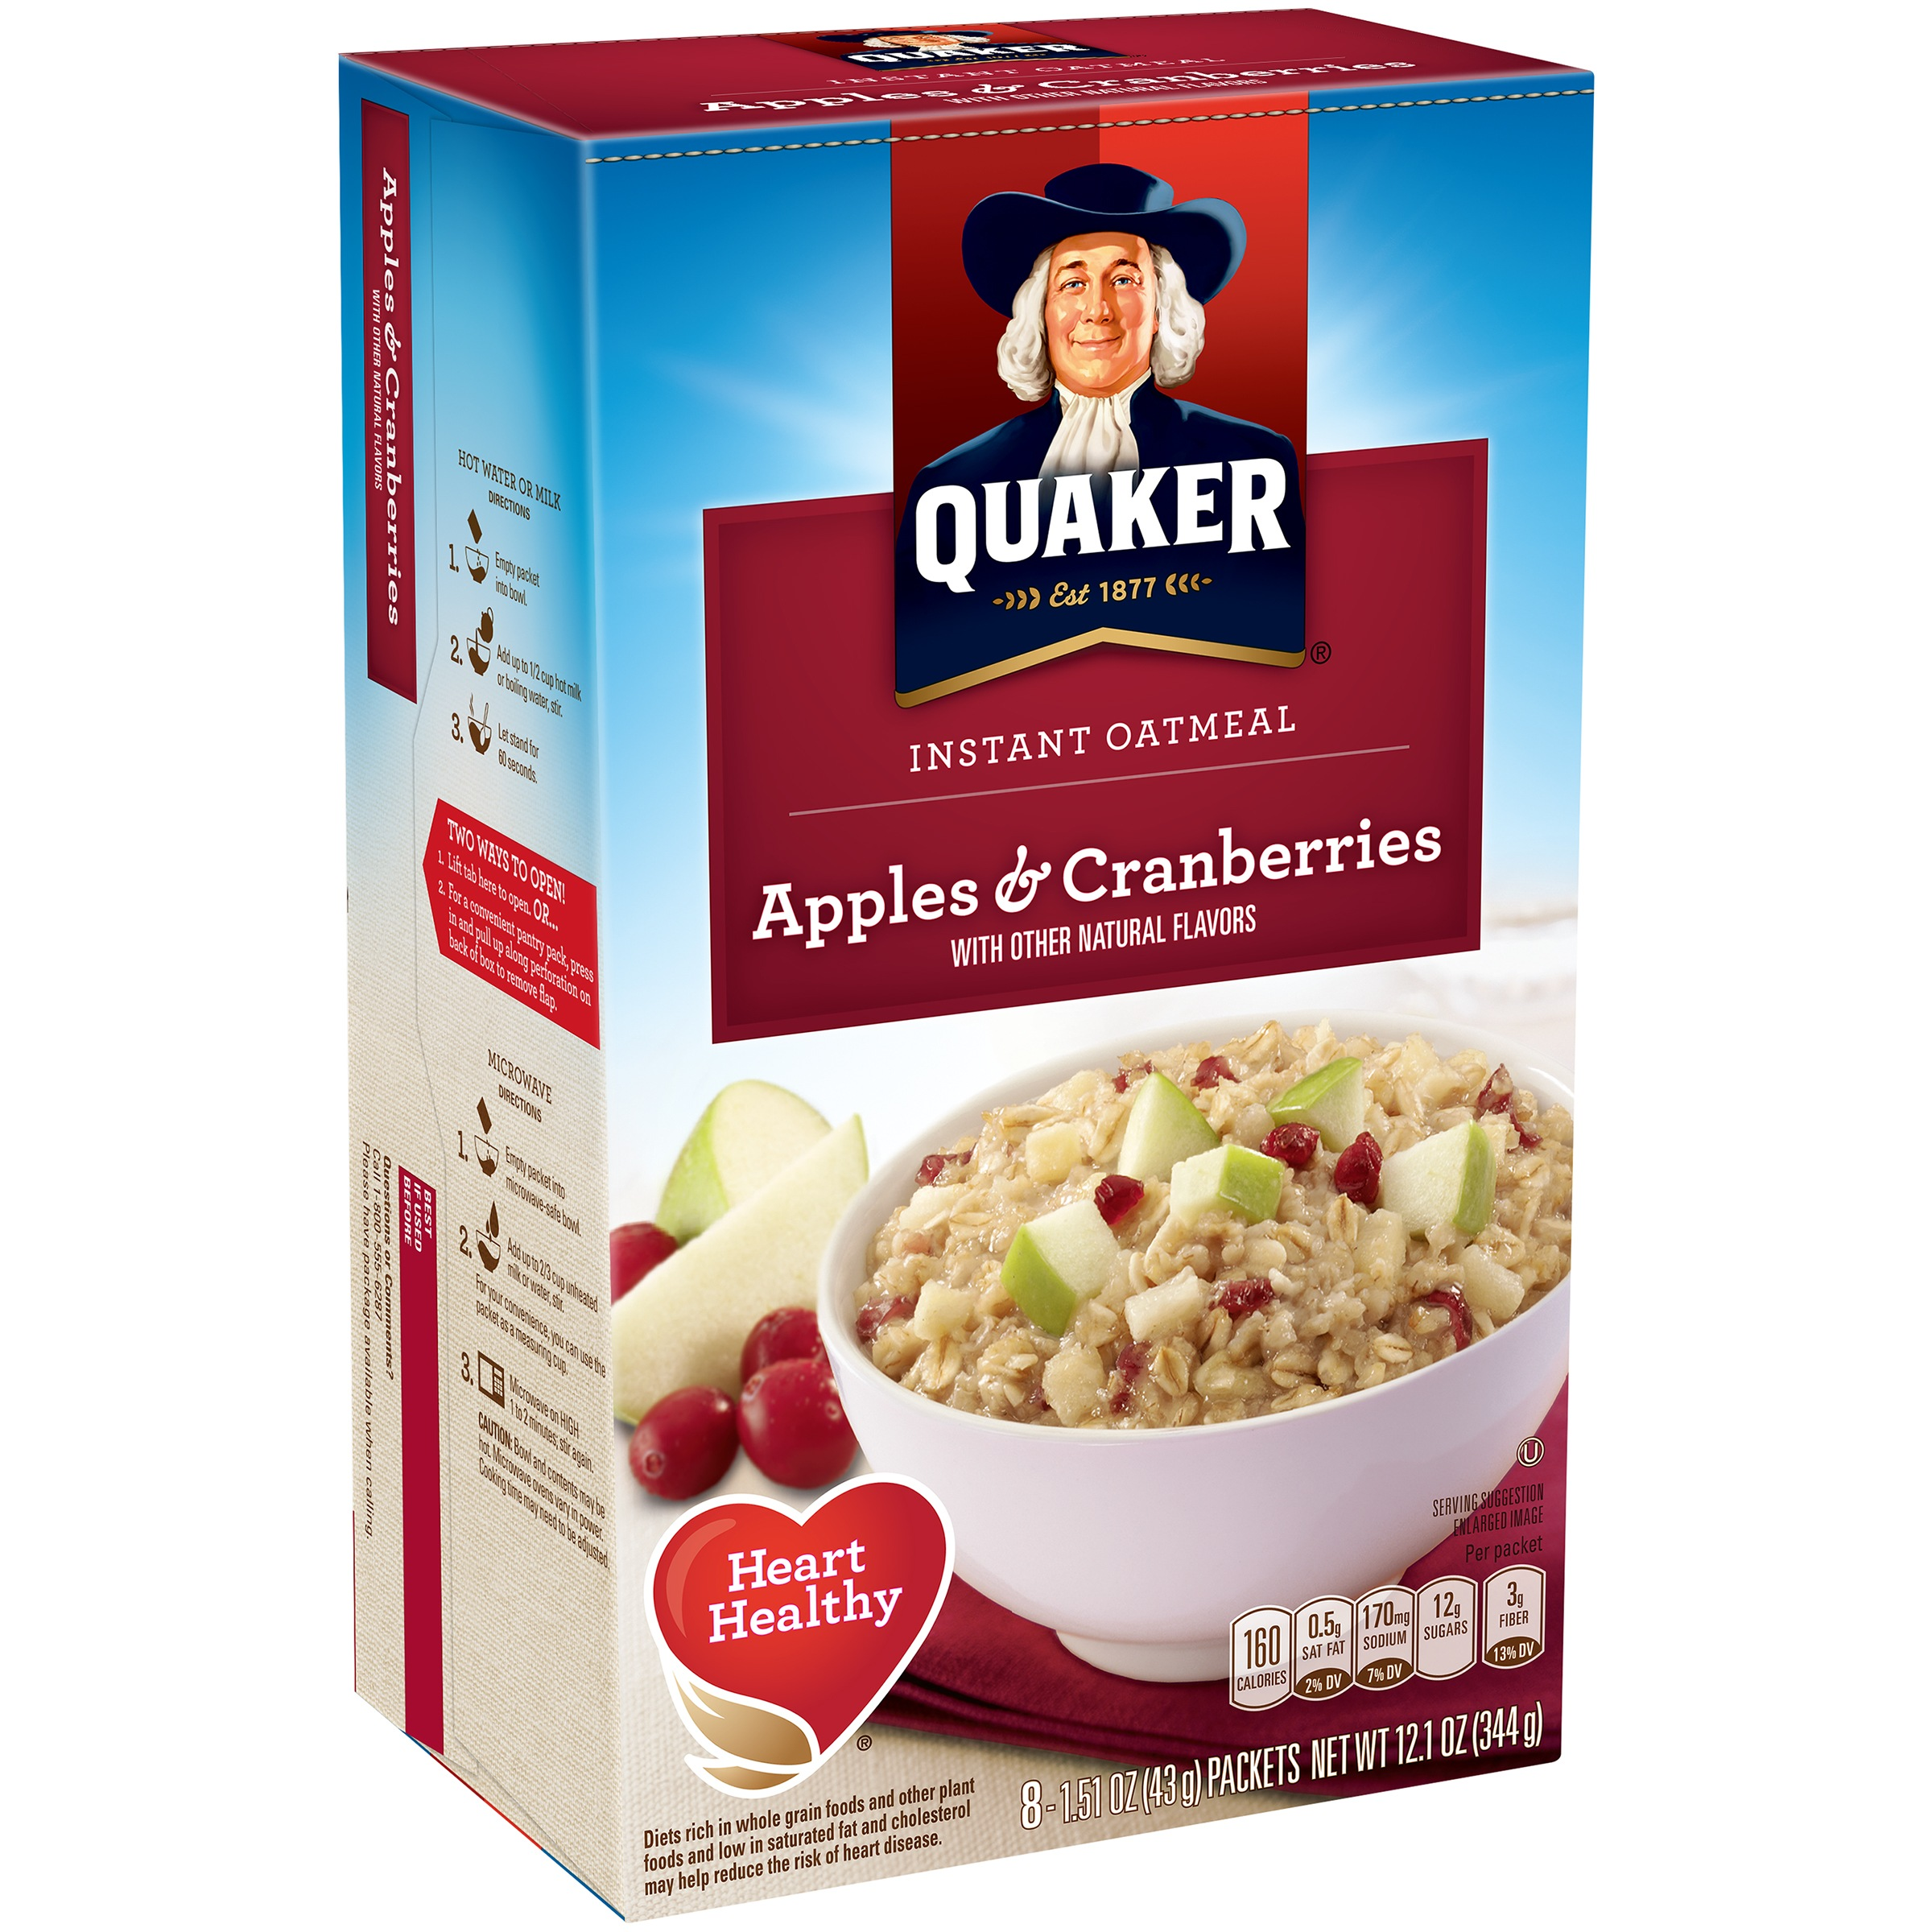 Quaker Instant Oatmeal Breakfast Cereal, Apples & Cranberries, 1.51 Oz, 8 Ct